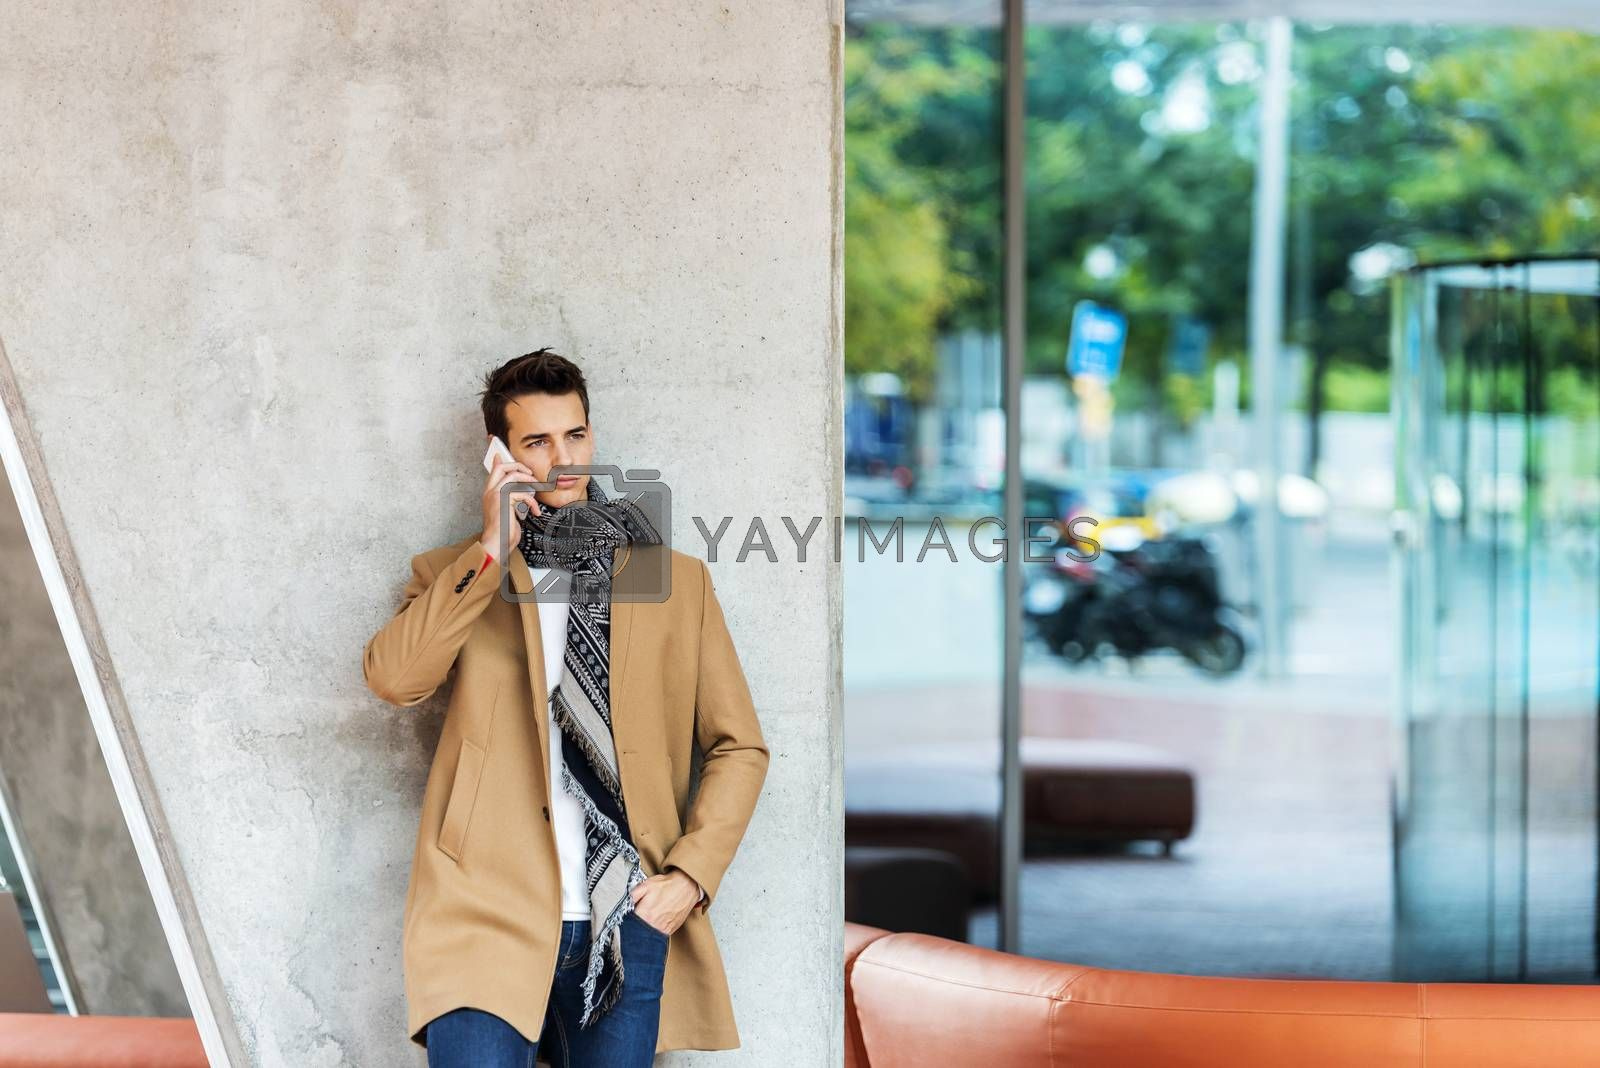 Front view of fashionable young man wearing denim clothes leaning on a wall while using a mobile phone outdoors